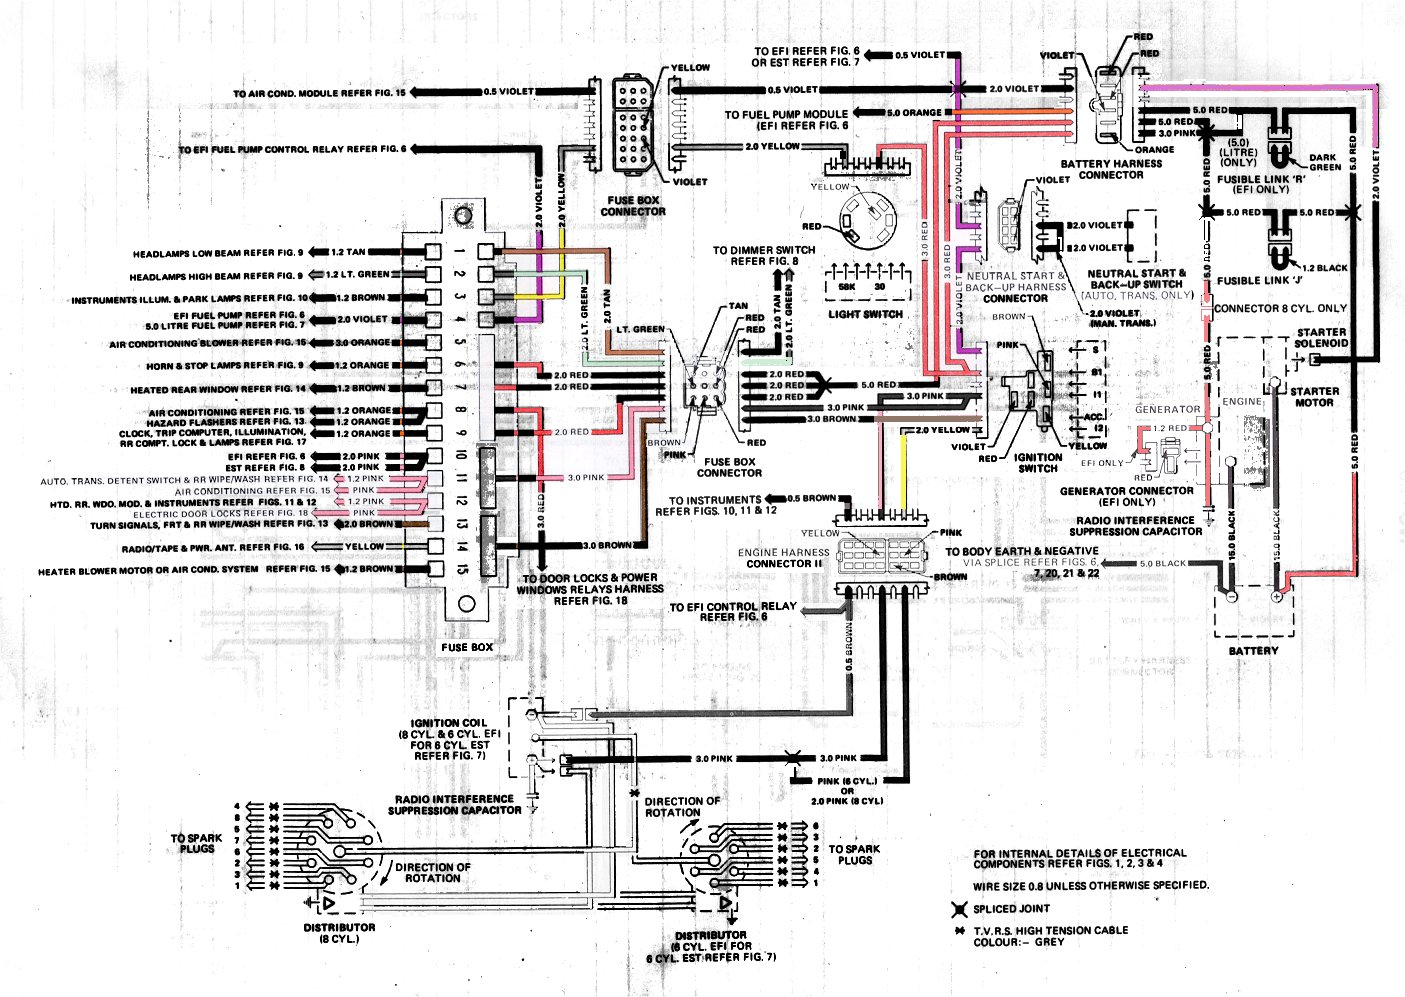 Wiring%2BDiagram%2BHolden%2BVK%2BCommodore Yamaha R Wiring Diagram Pdf on yamaha r6 lighting, yamaha r6 engine, yamaha r6 clutch, yamaha r6 motor, yamaha r6 water pump, yamaha r6 power, yamaha r6 brakes, suzuki c50 wiring diagram, yamaha r6 schematics, yamaha r6 chain adjustment, yamaha r6 ignition switch, yamaha r6 battery, yamaha r6 forum, yamaha r6 coil, yamaha r6 tires, yamaha r6 cover, yamaha r6 suspension, yamaha r6 wheels, yamaha r6 frame, yamaha r6 ecu,